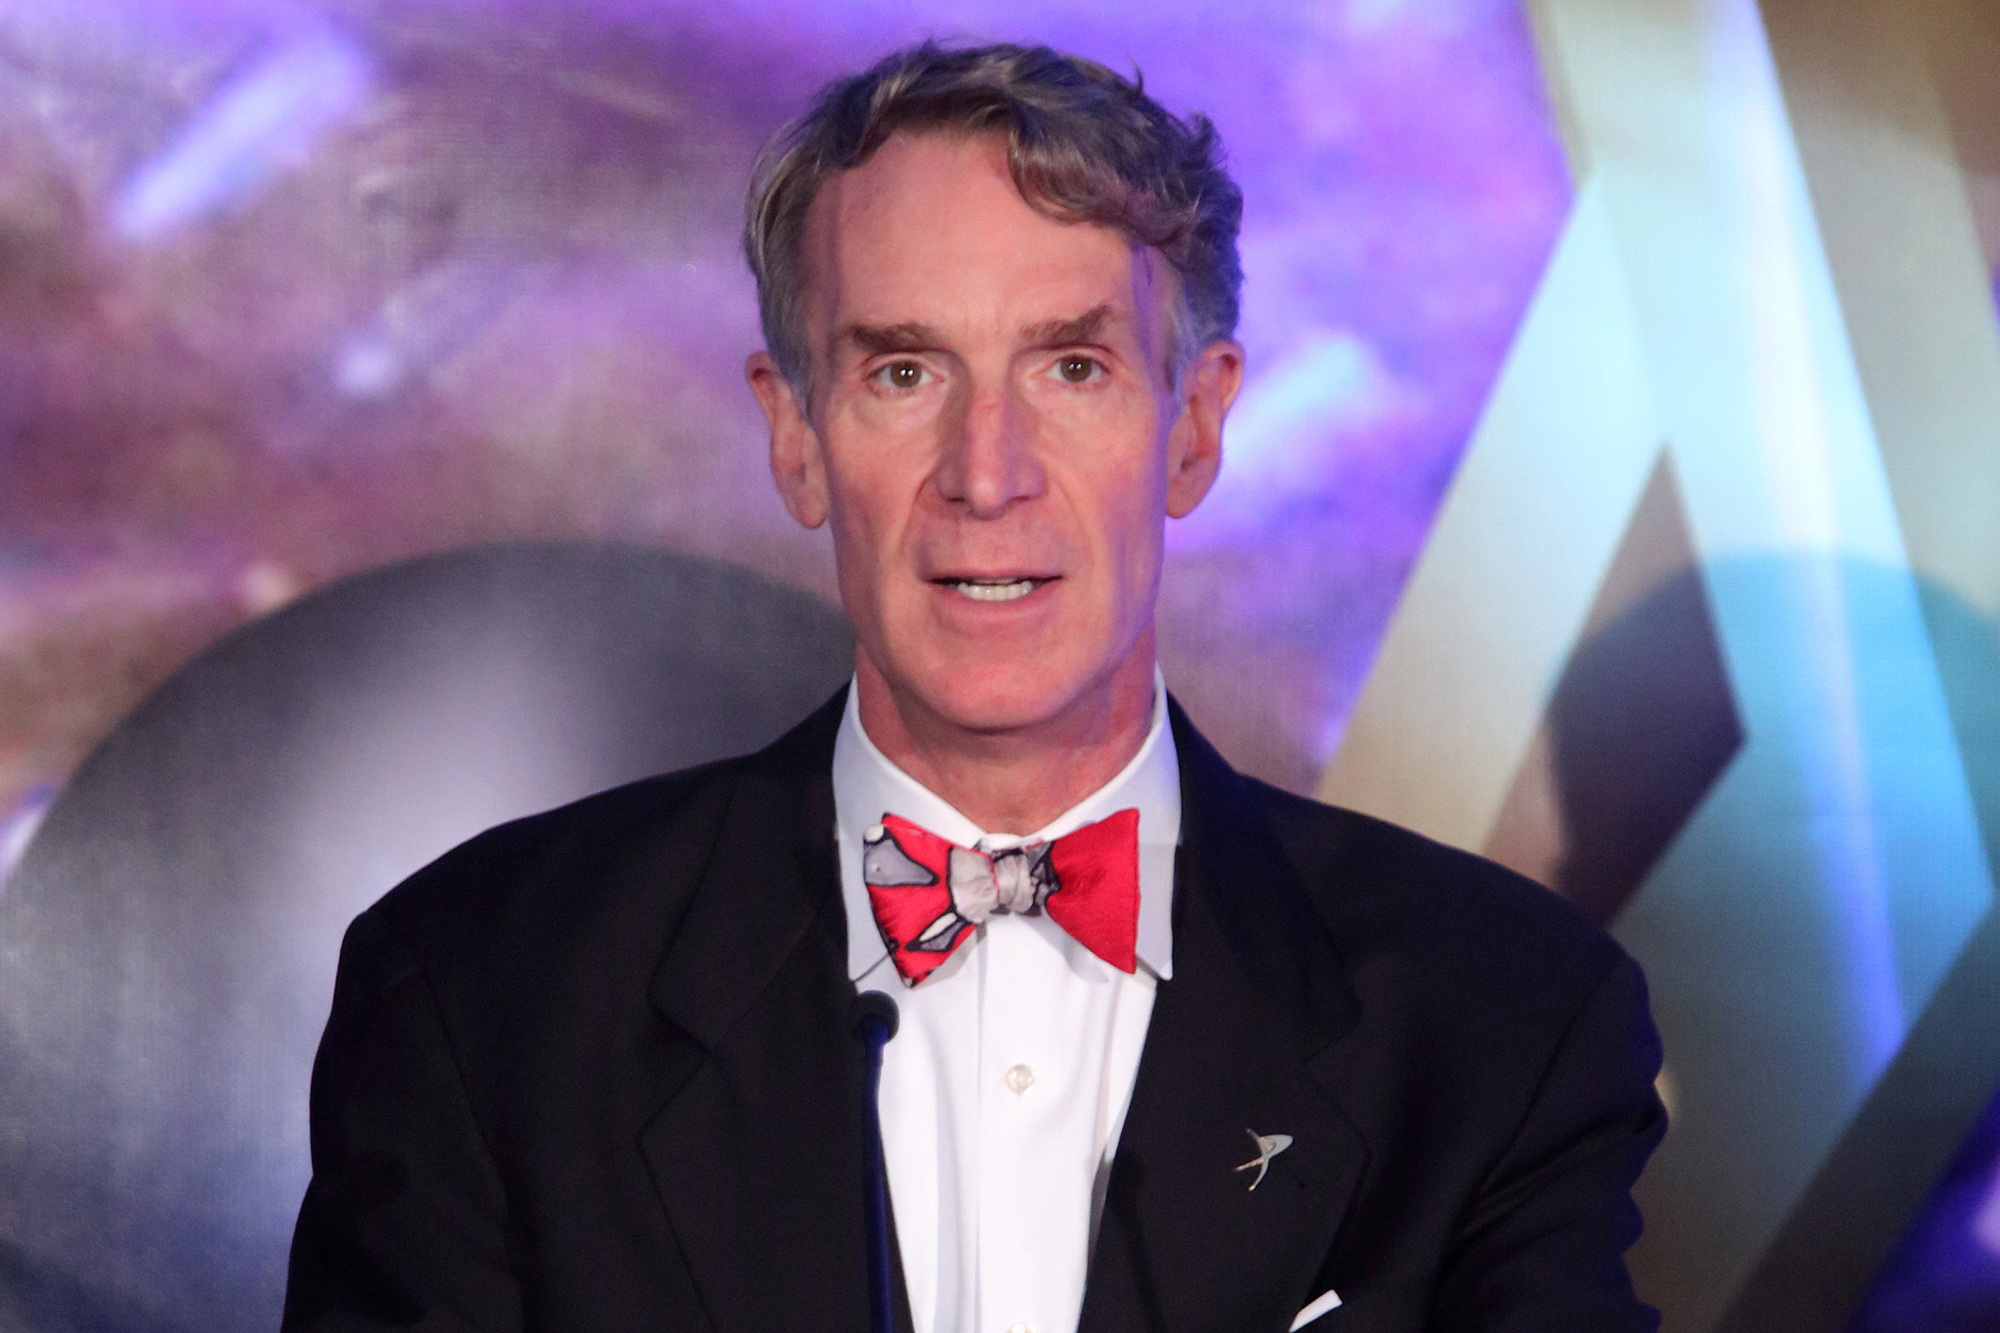 Bill Nye the Science Guy Photo: WireImage